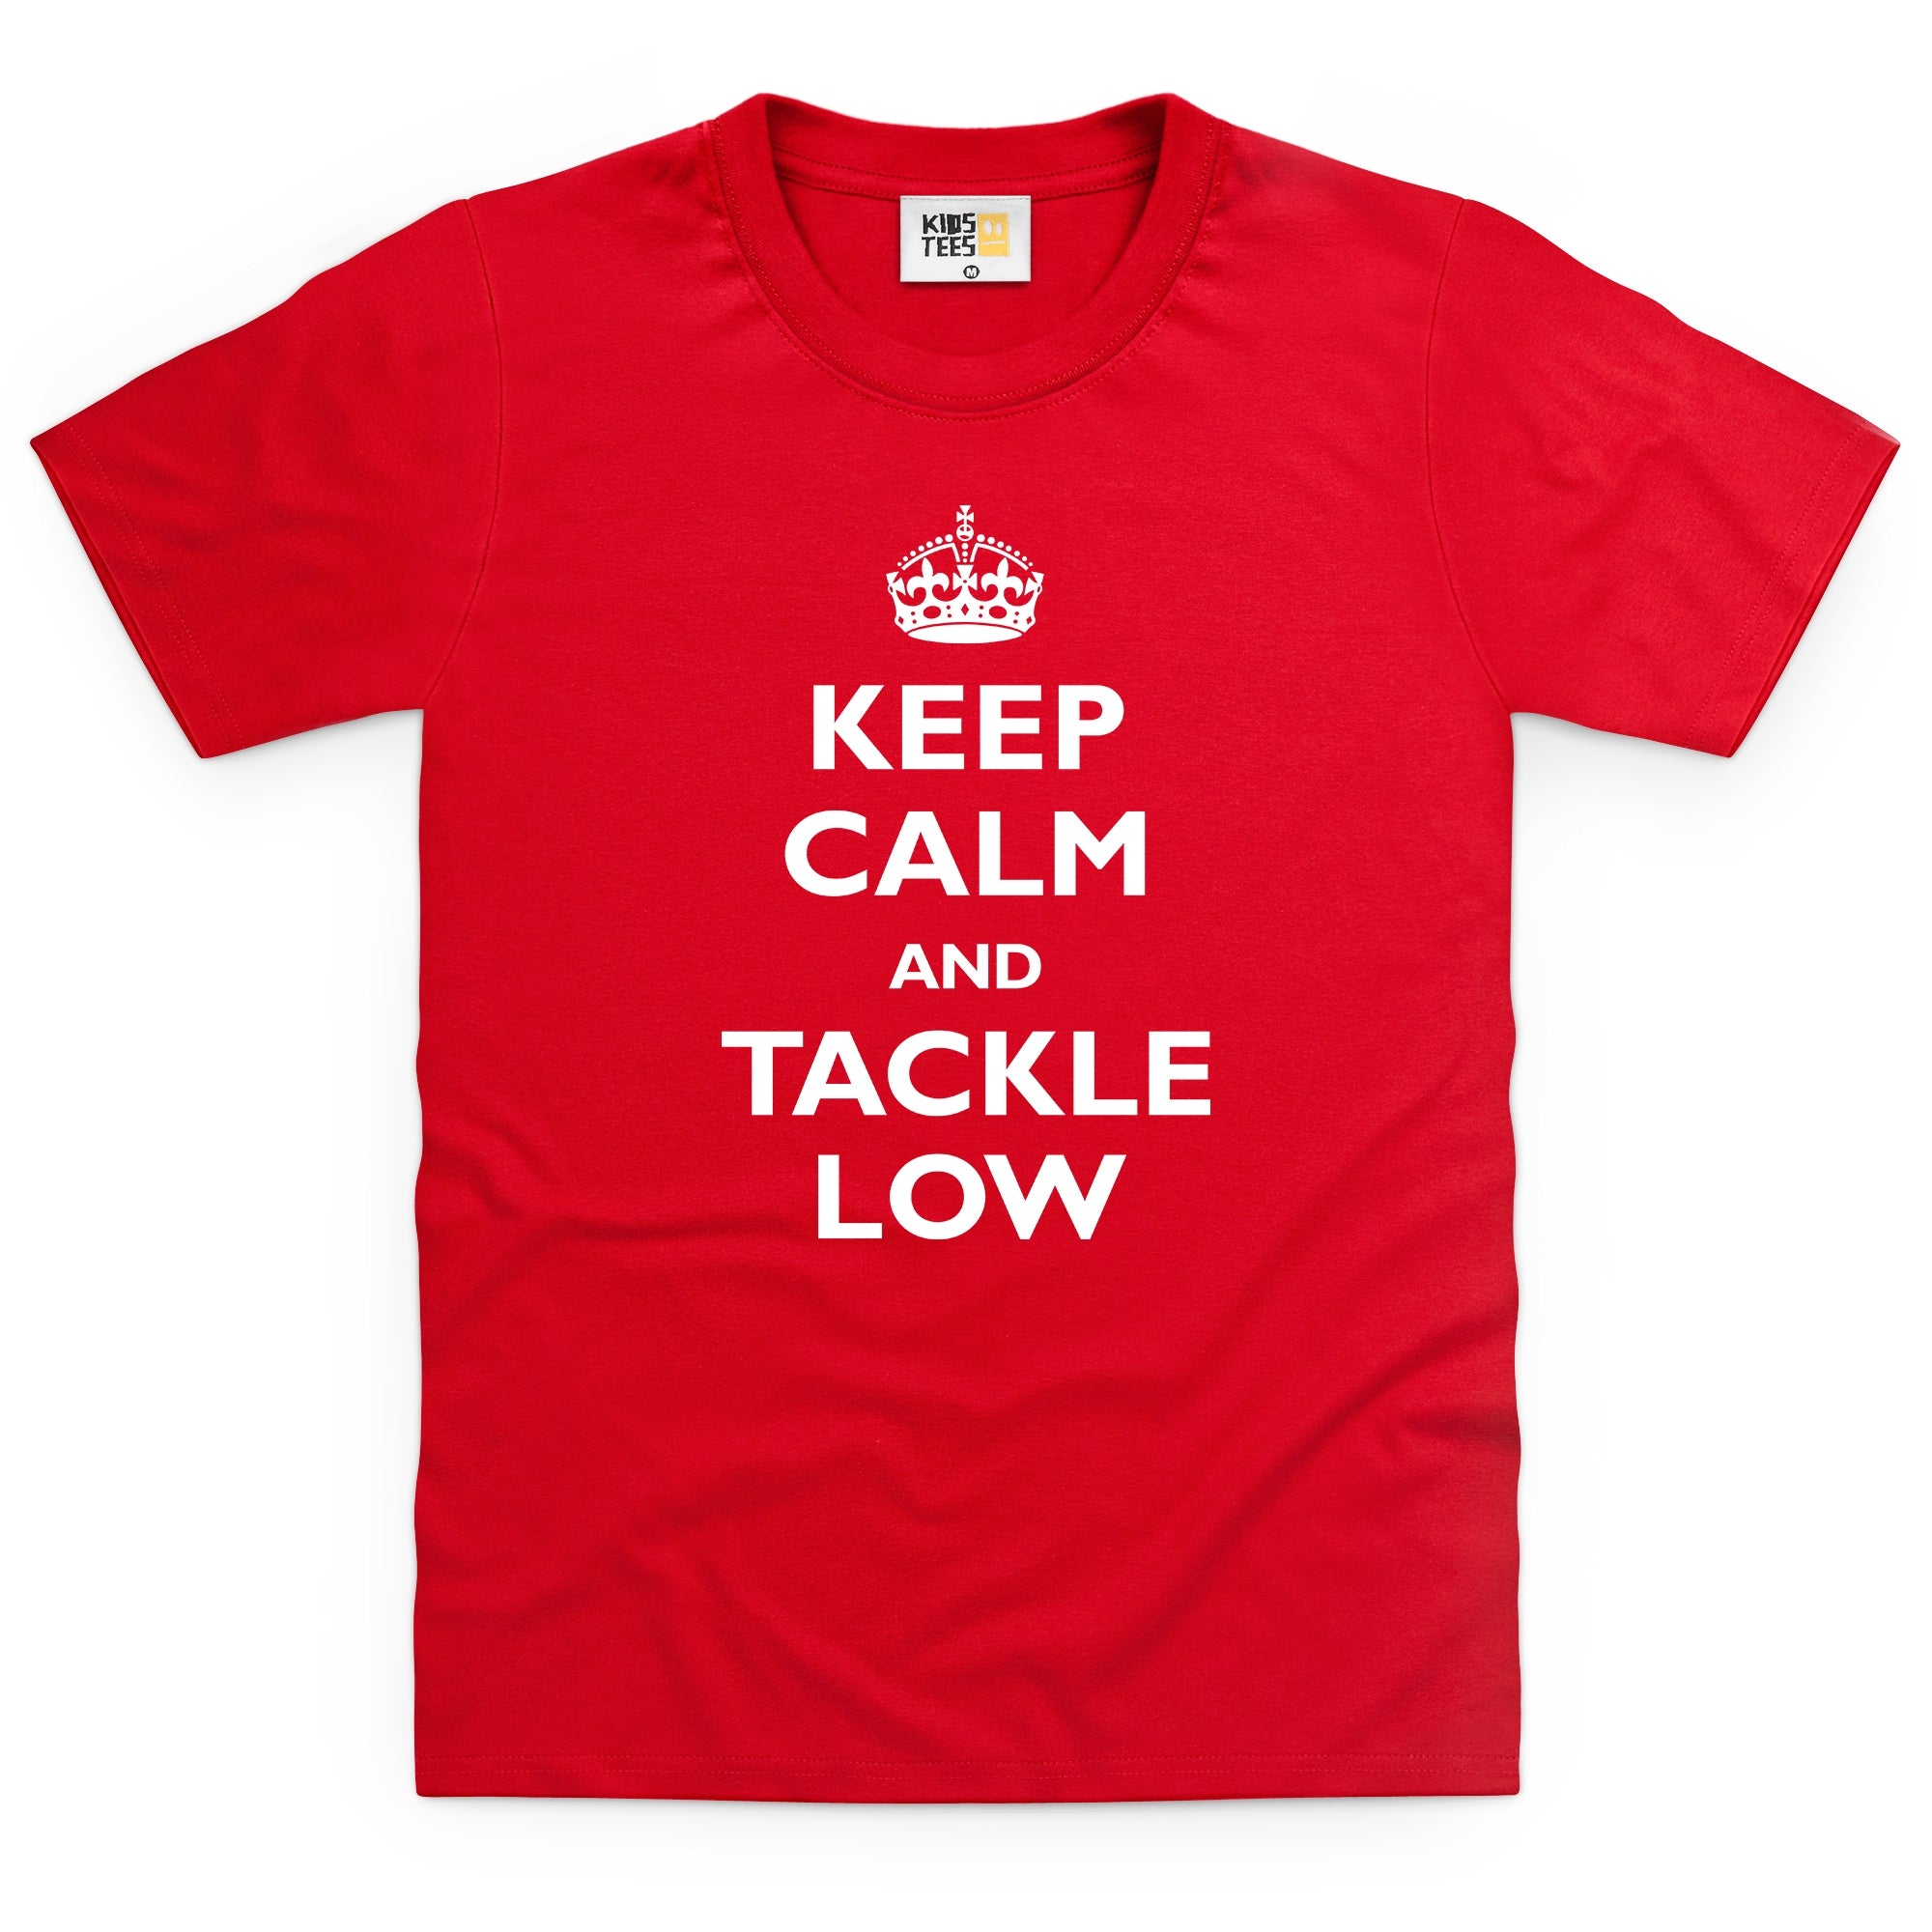 CHEAP Keep Calm and Tackle Low Kid's T Shirt 25874570335 – Clothing Accessories